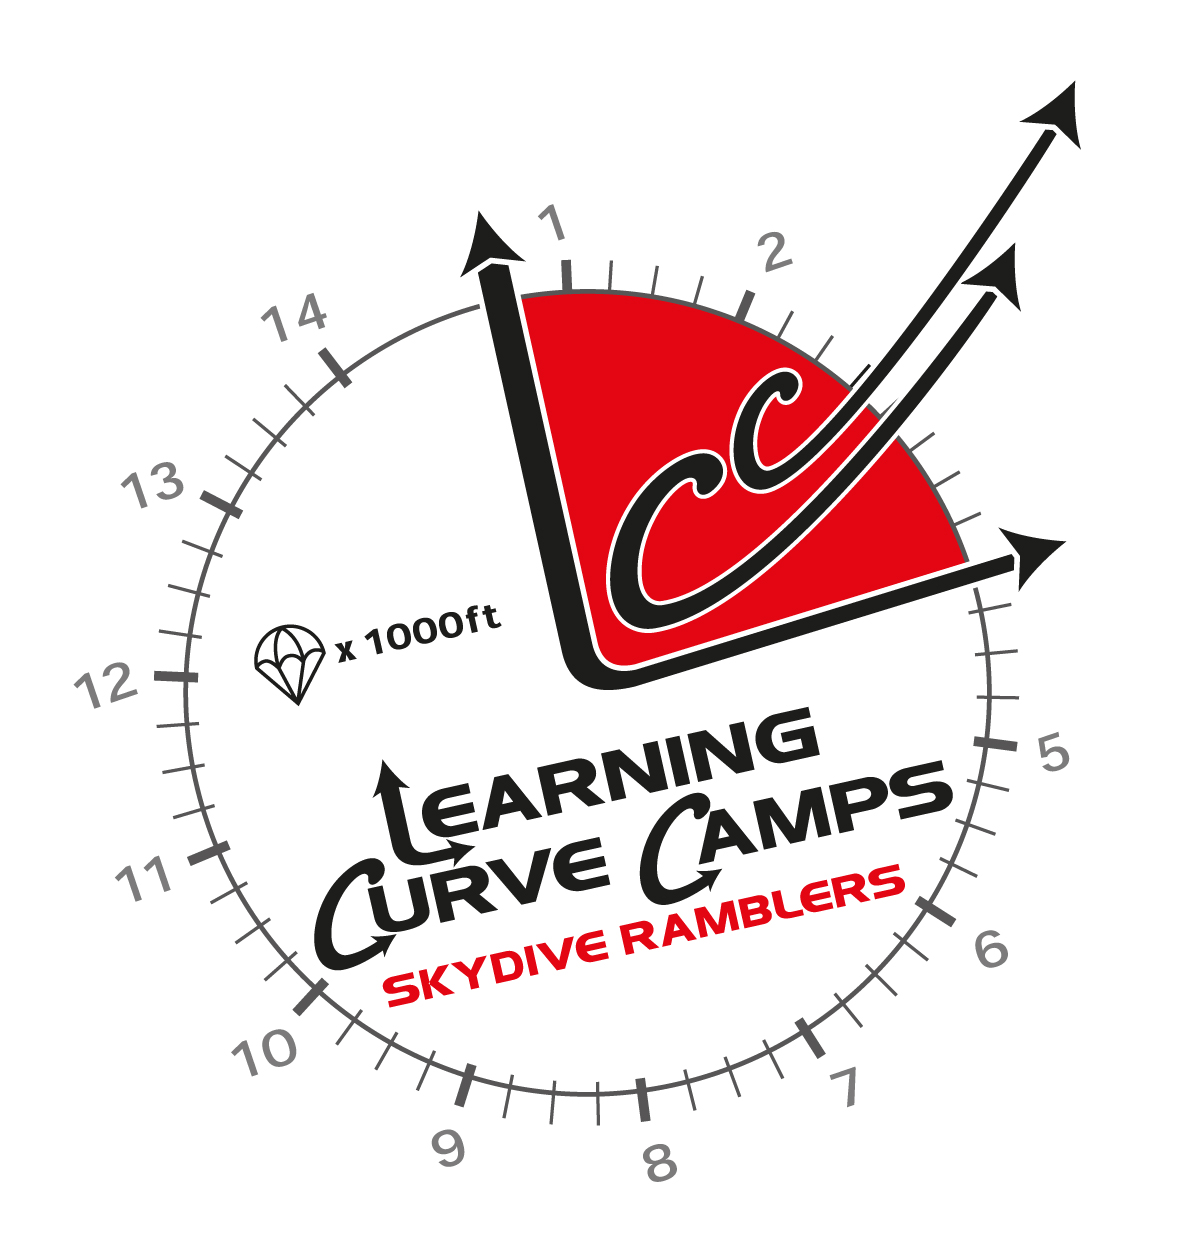 Learning Curve Camp